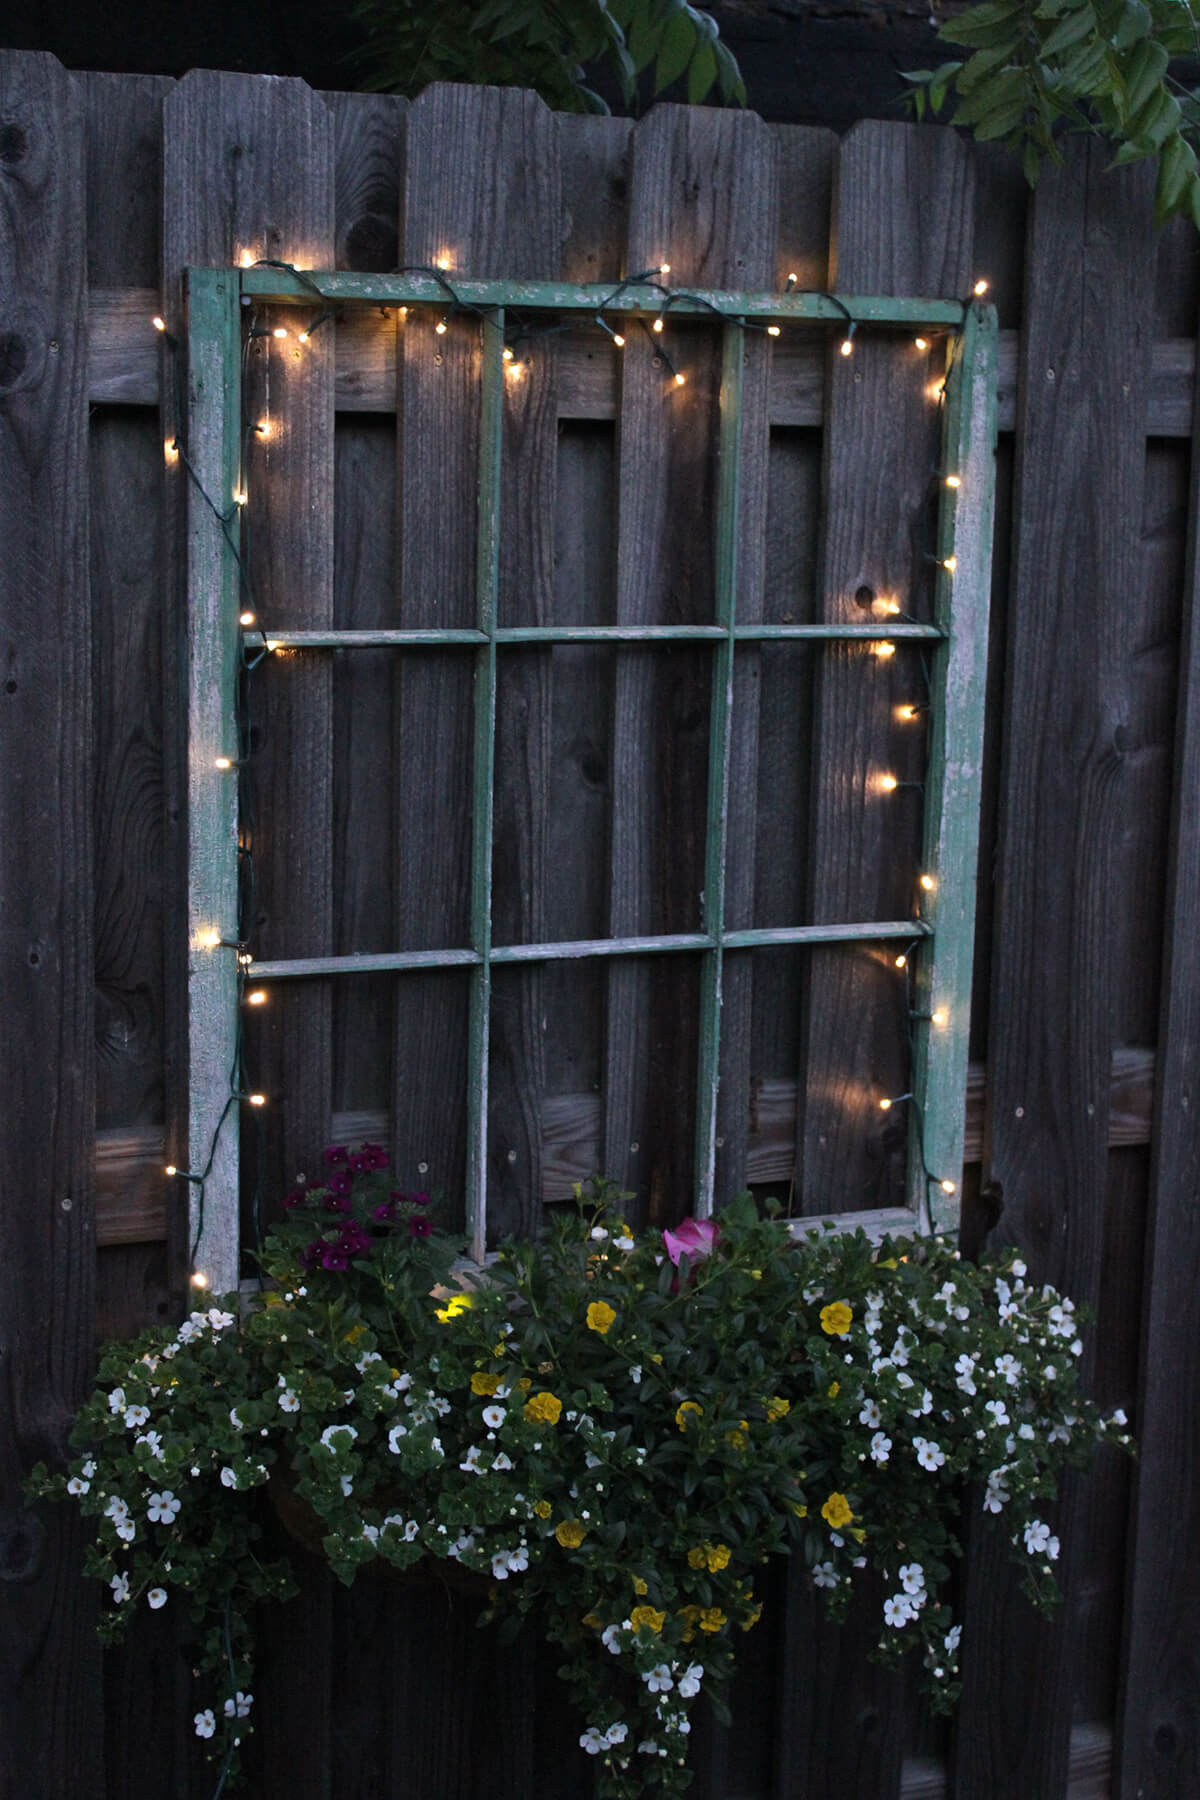 Magical Fairy Lights and Hanging Flowers